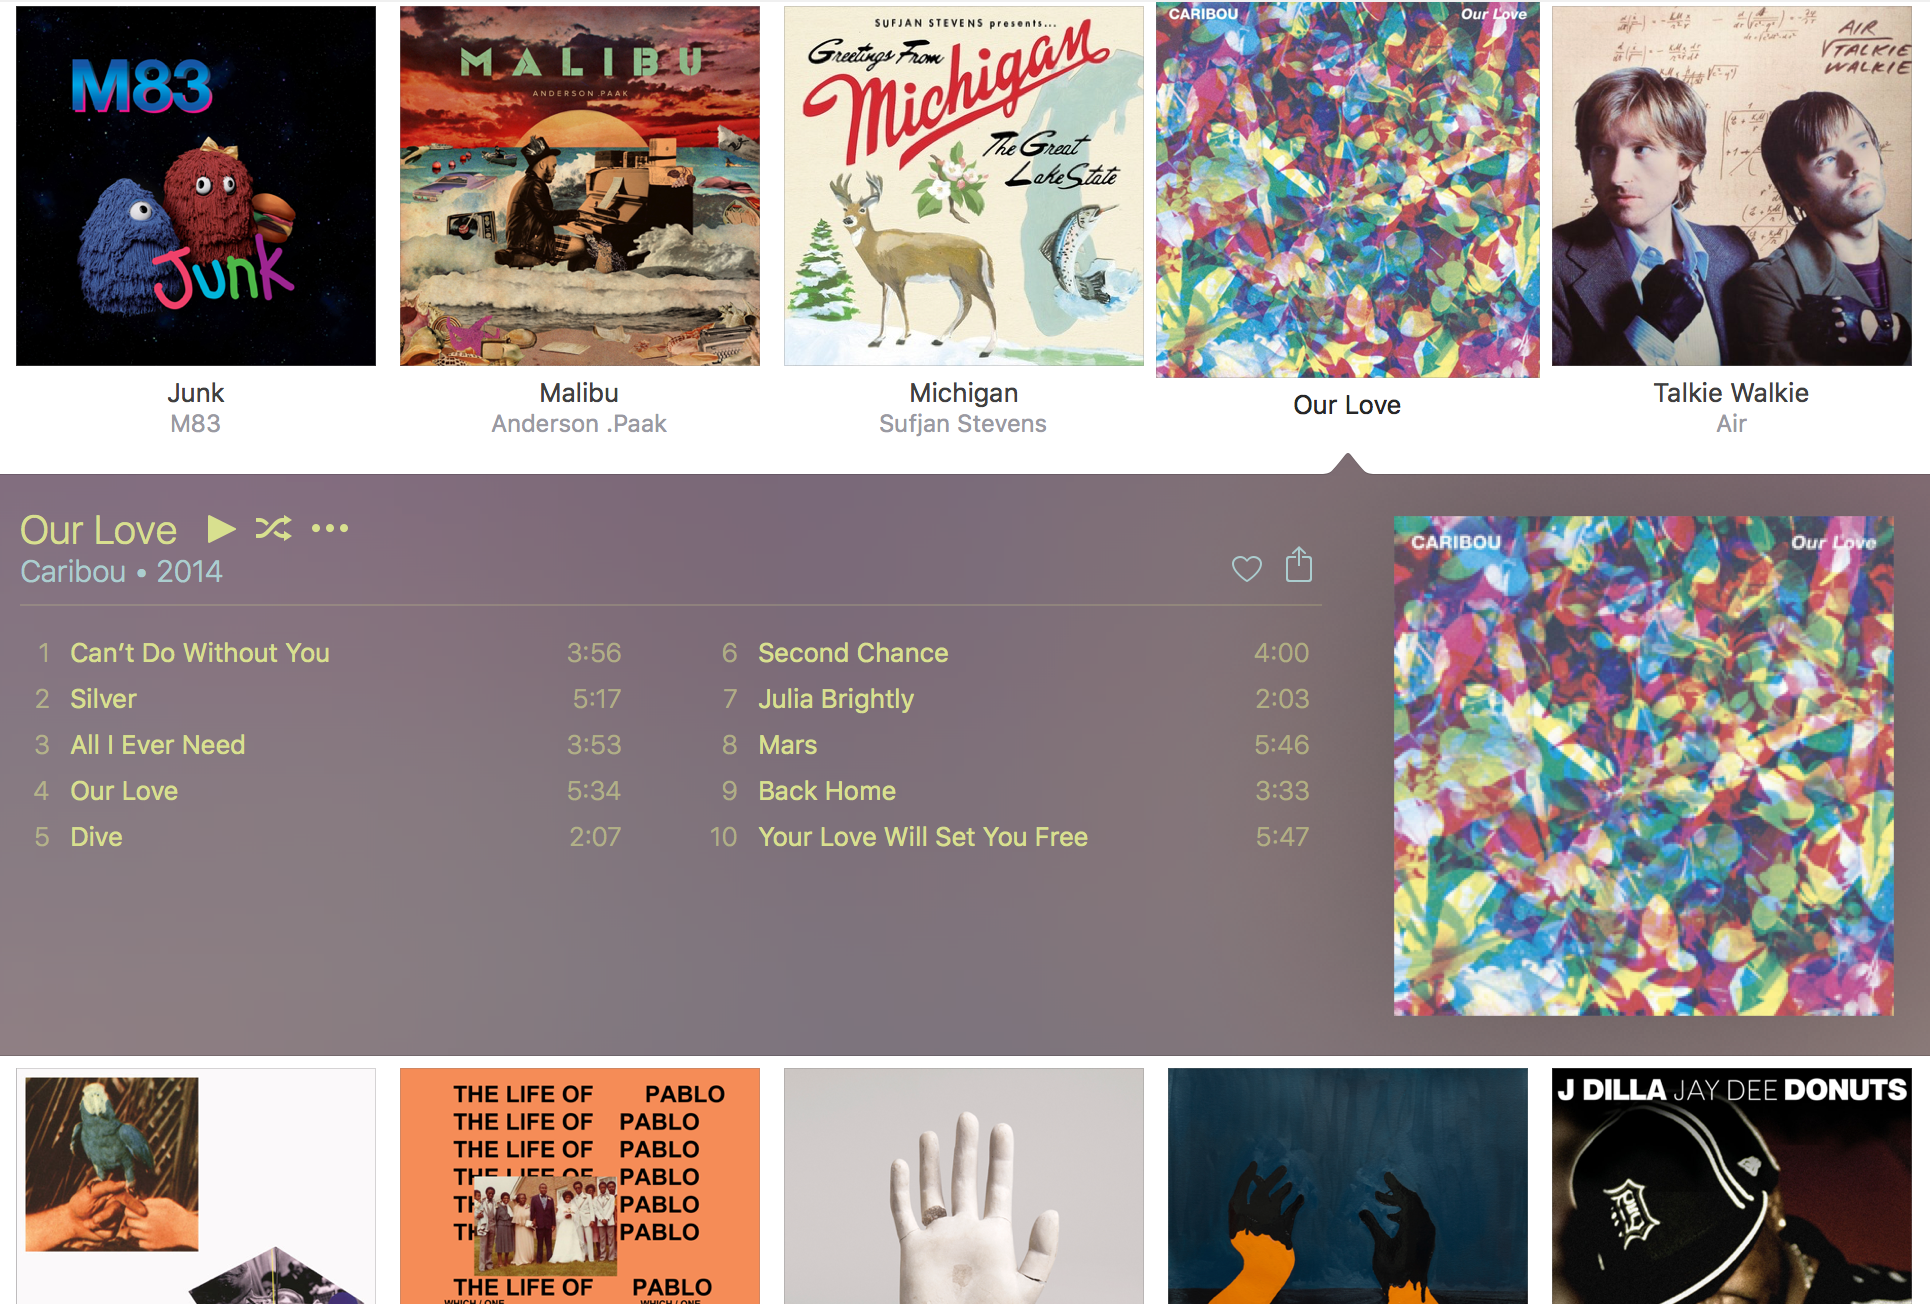 iTunes automatic color-matching for albums looks nice